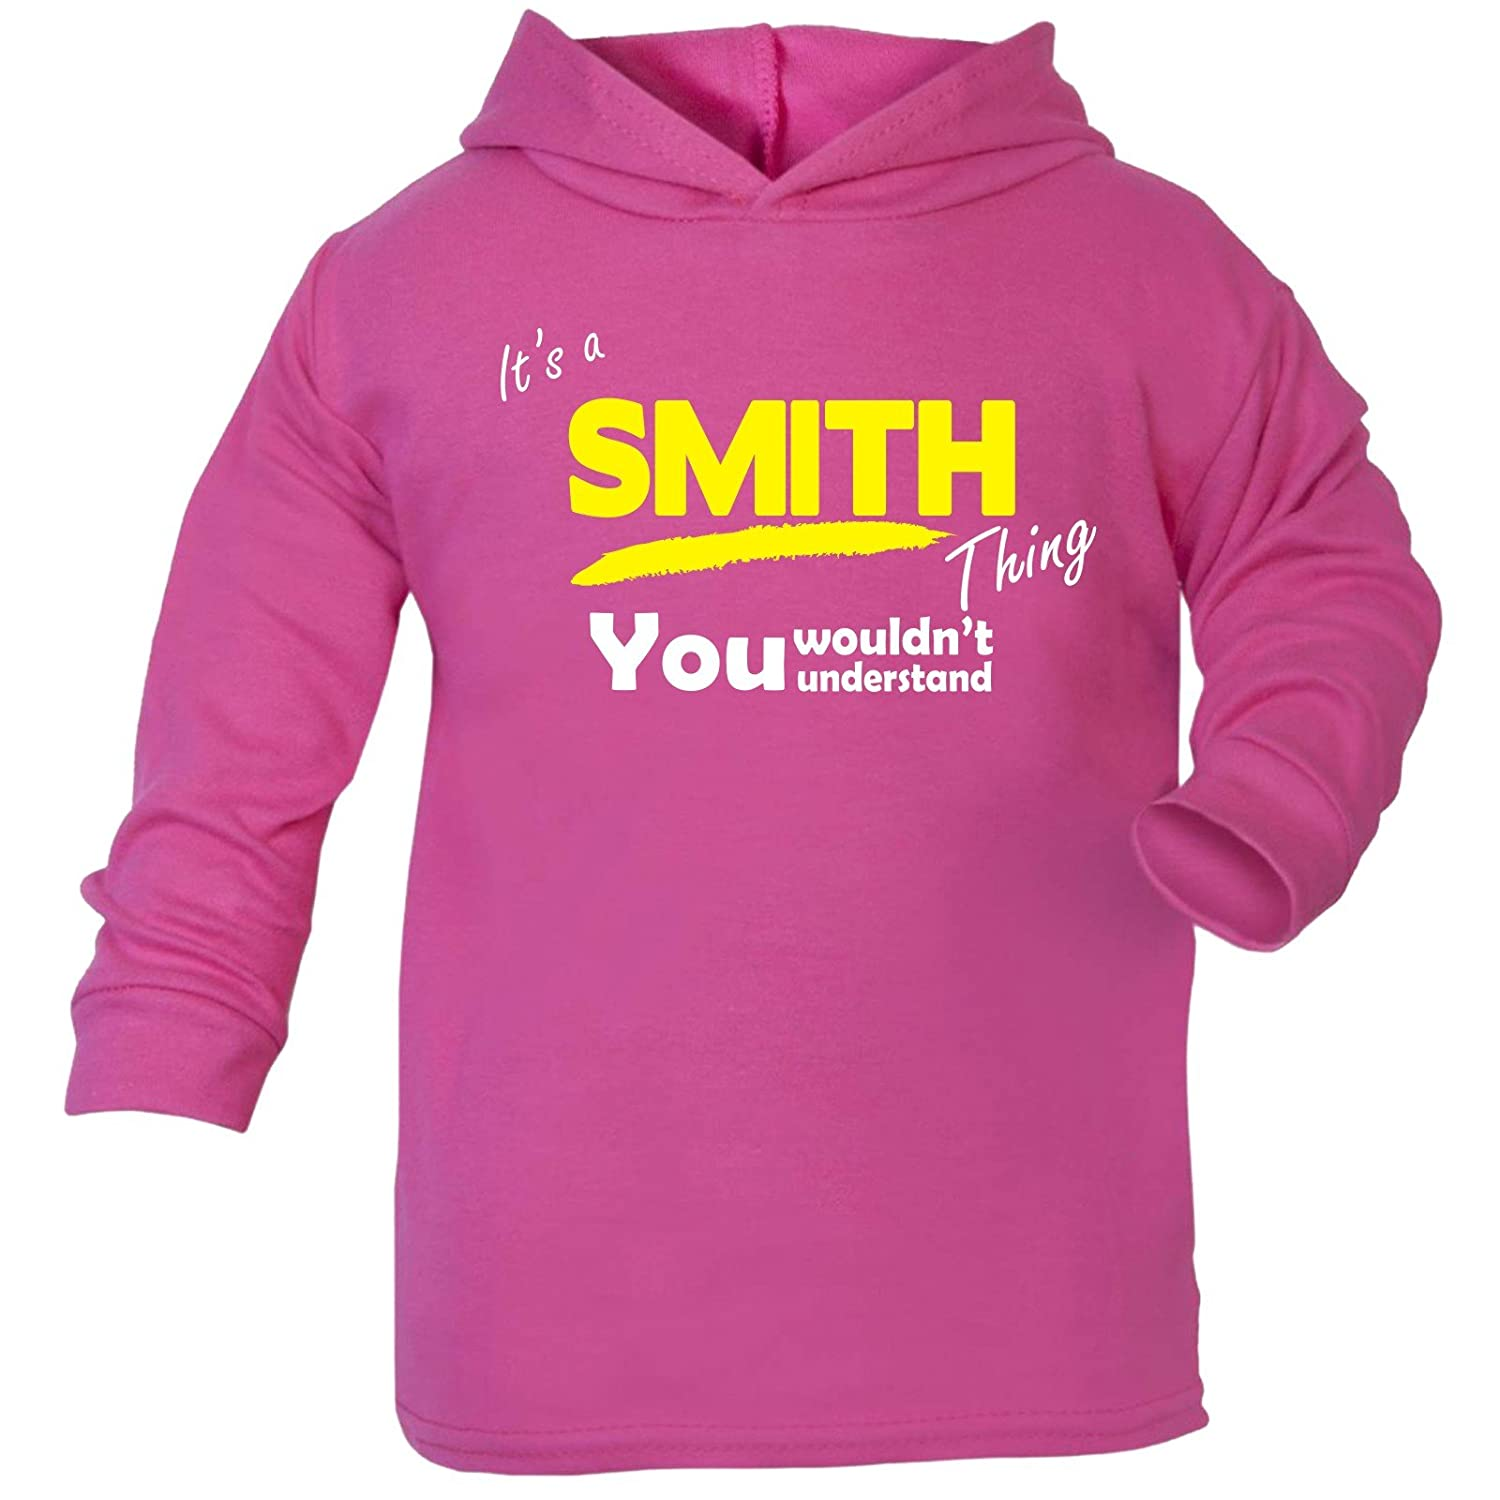 123t Baby It's A Smith Thing You Wouldn't Understand TODDLERS COTTON HOODIE